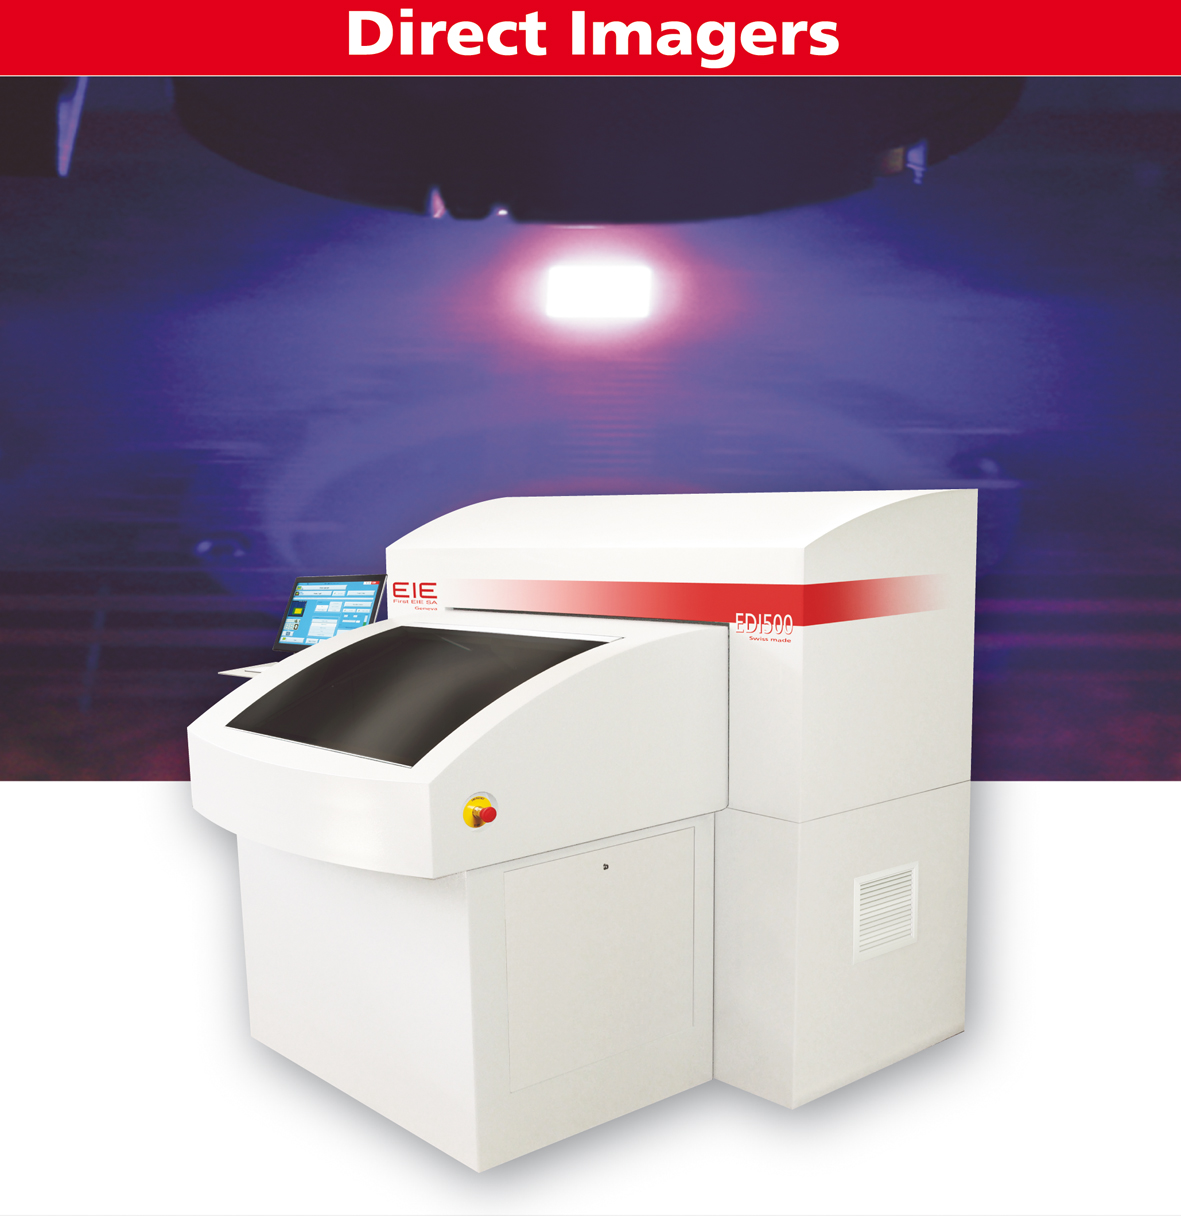 Direct Imager